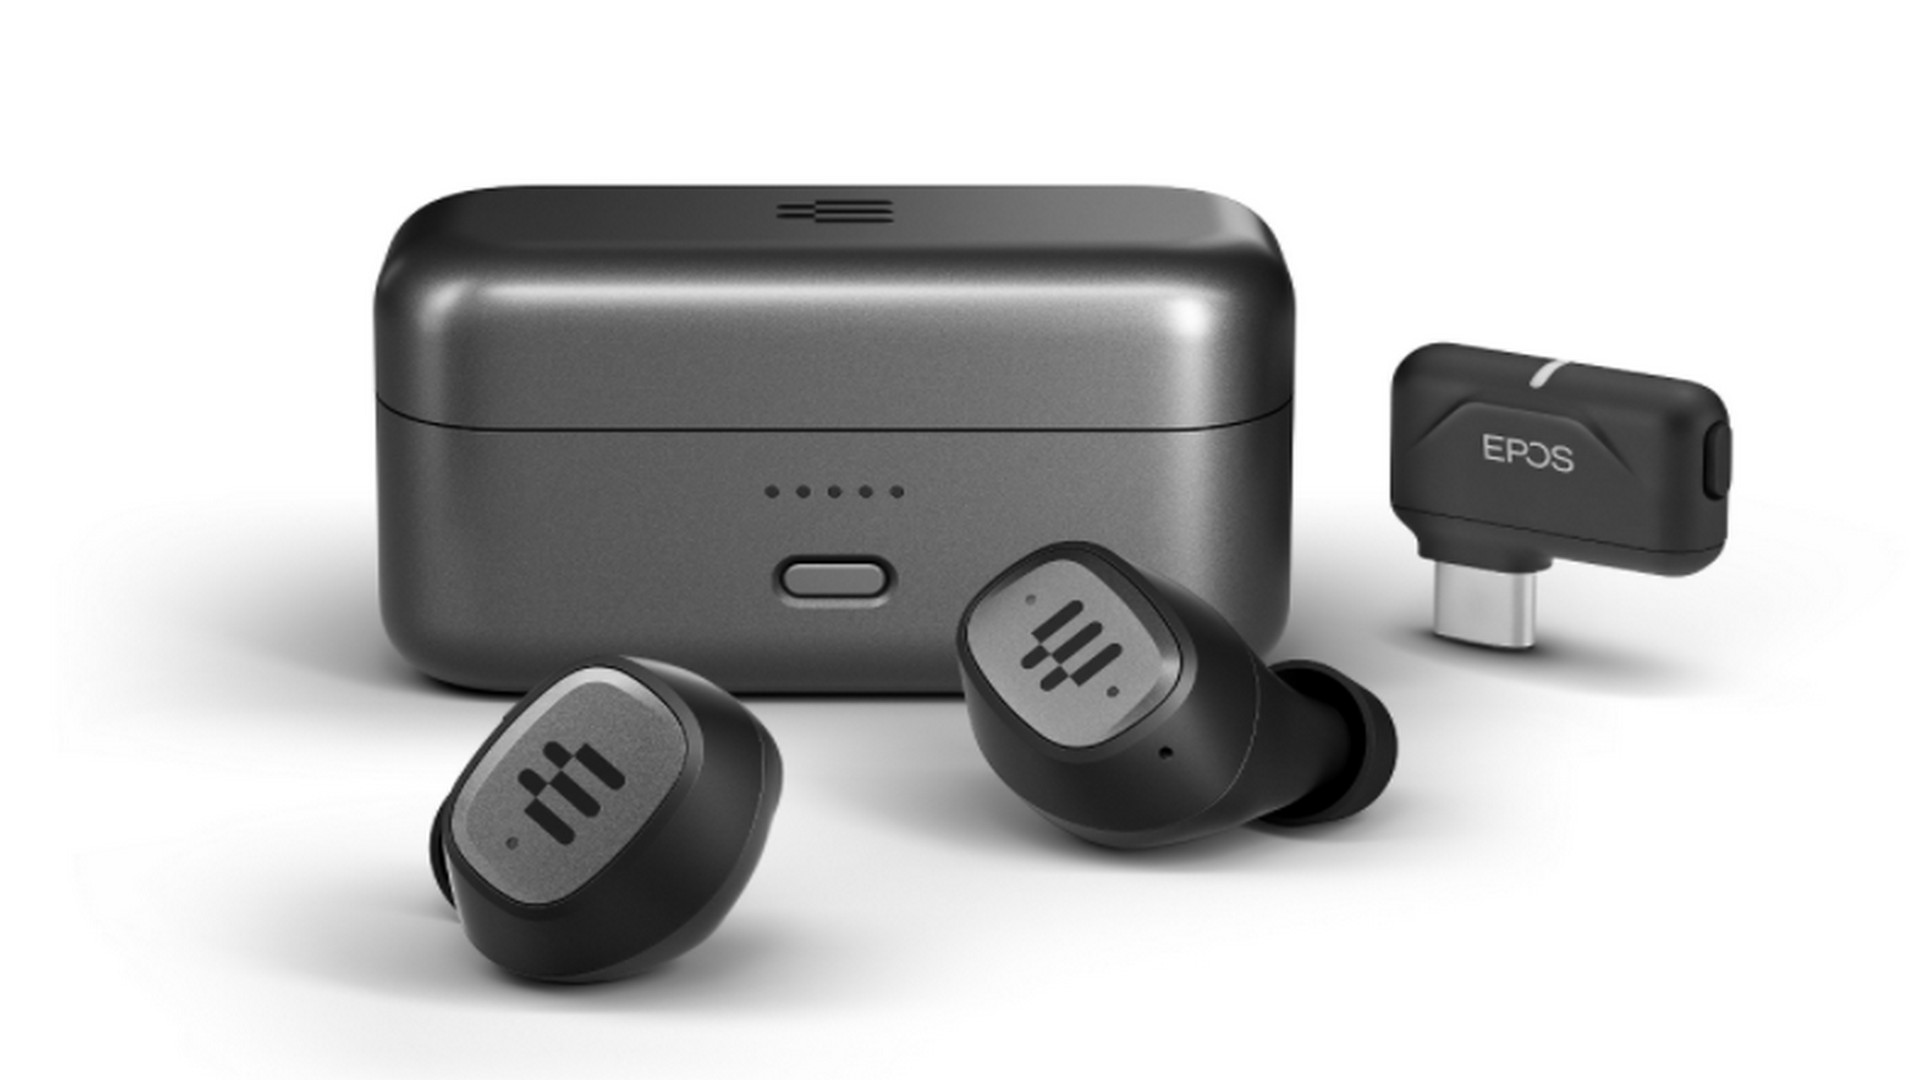 EPOS Delivers Latency-Free Gaming On The Go With New GTW 270 Hybrid Wireless Earbuds